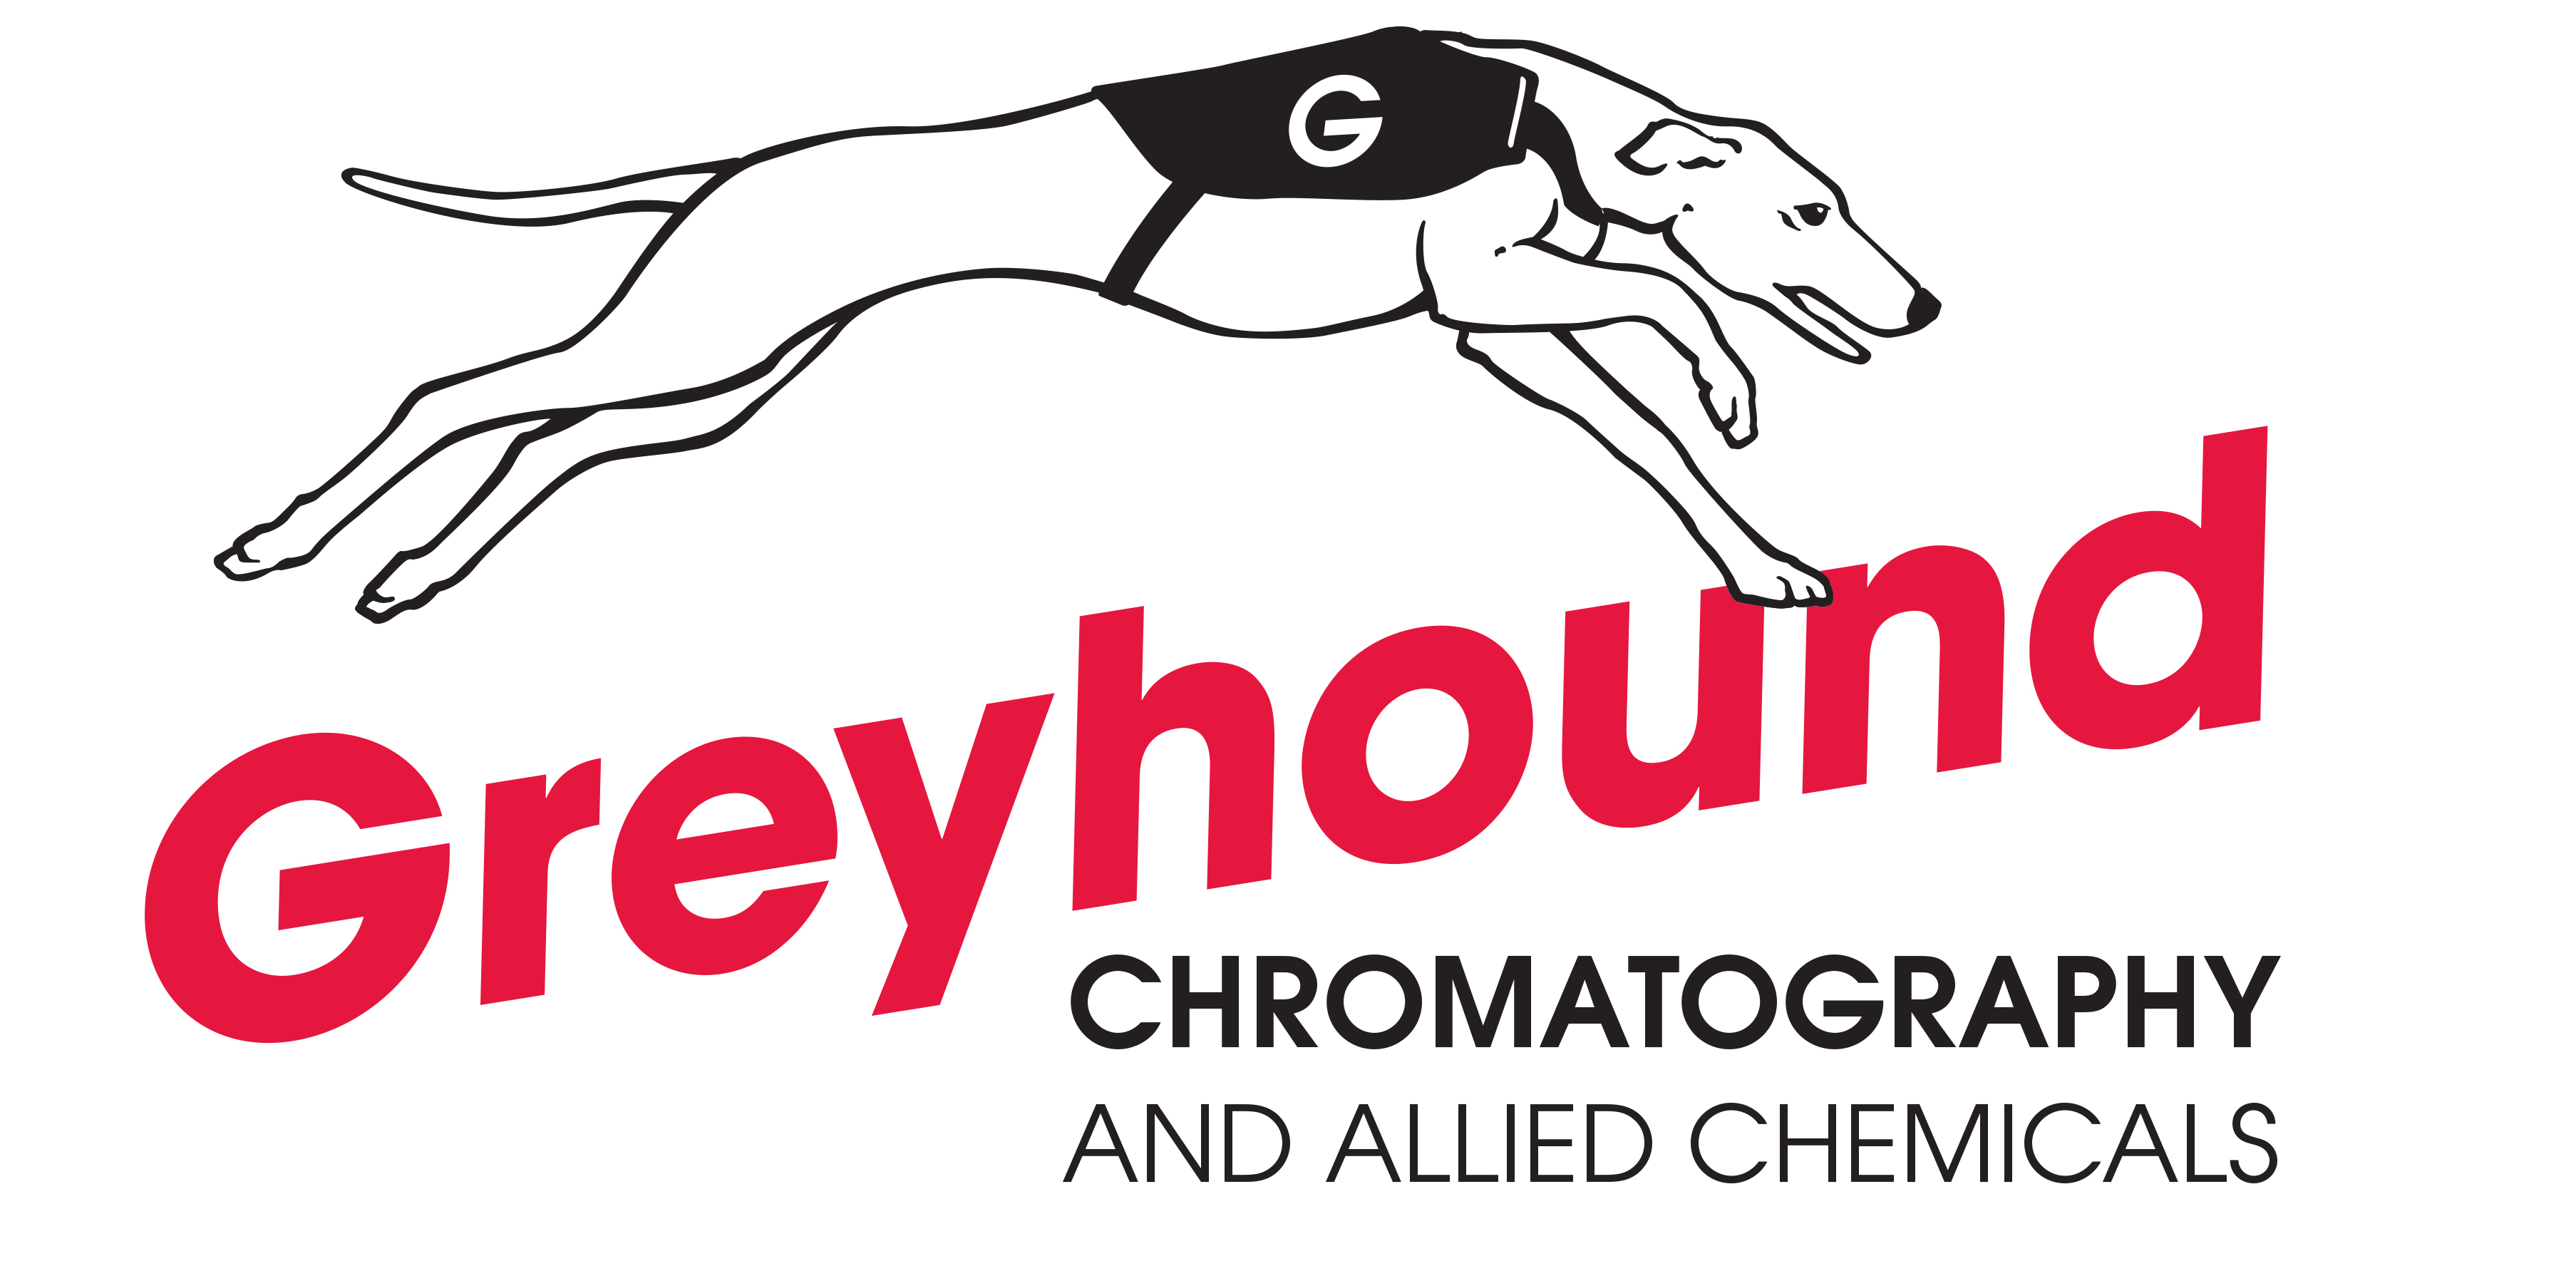 Greyhound Chromatography Colour Logo Image